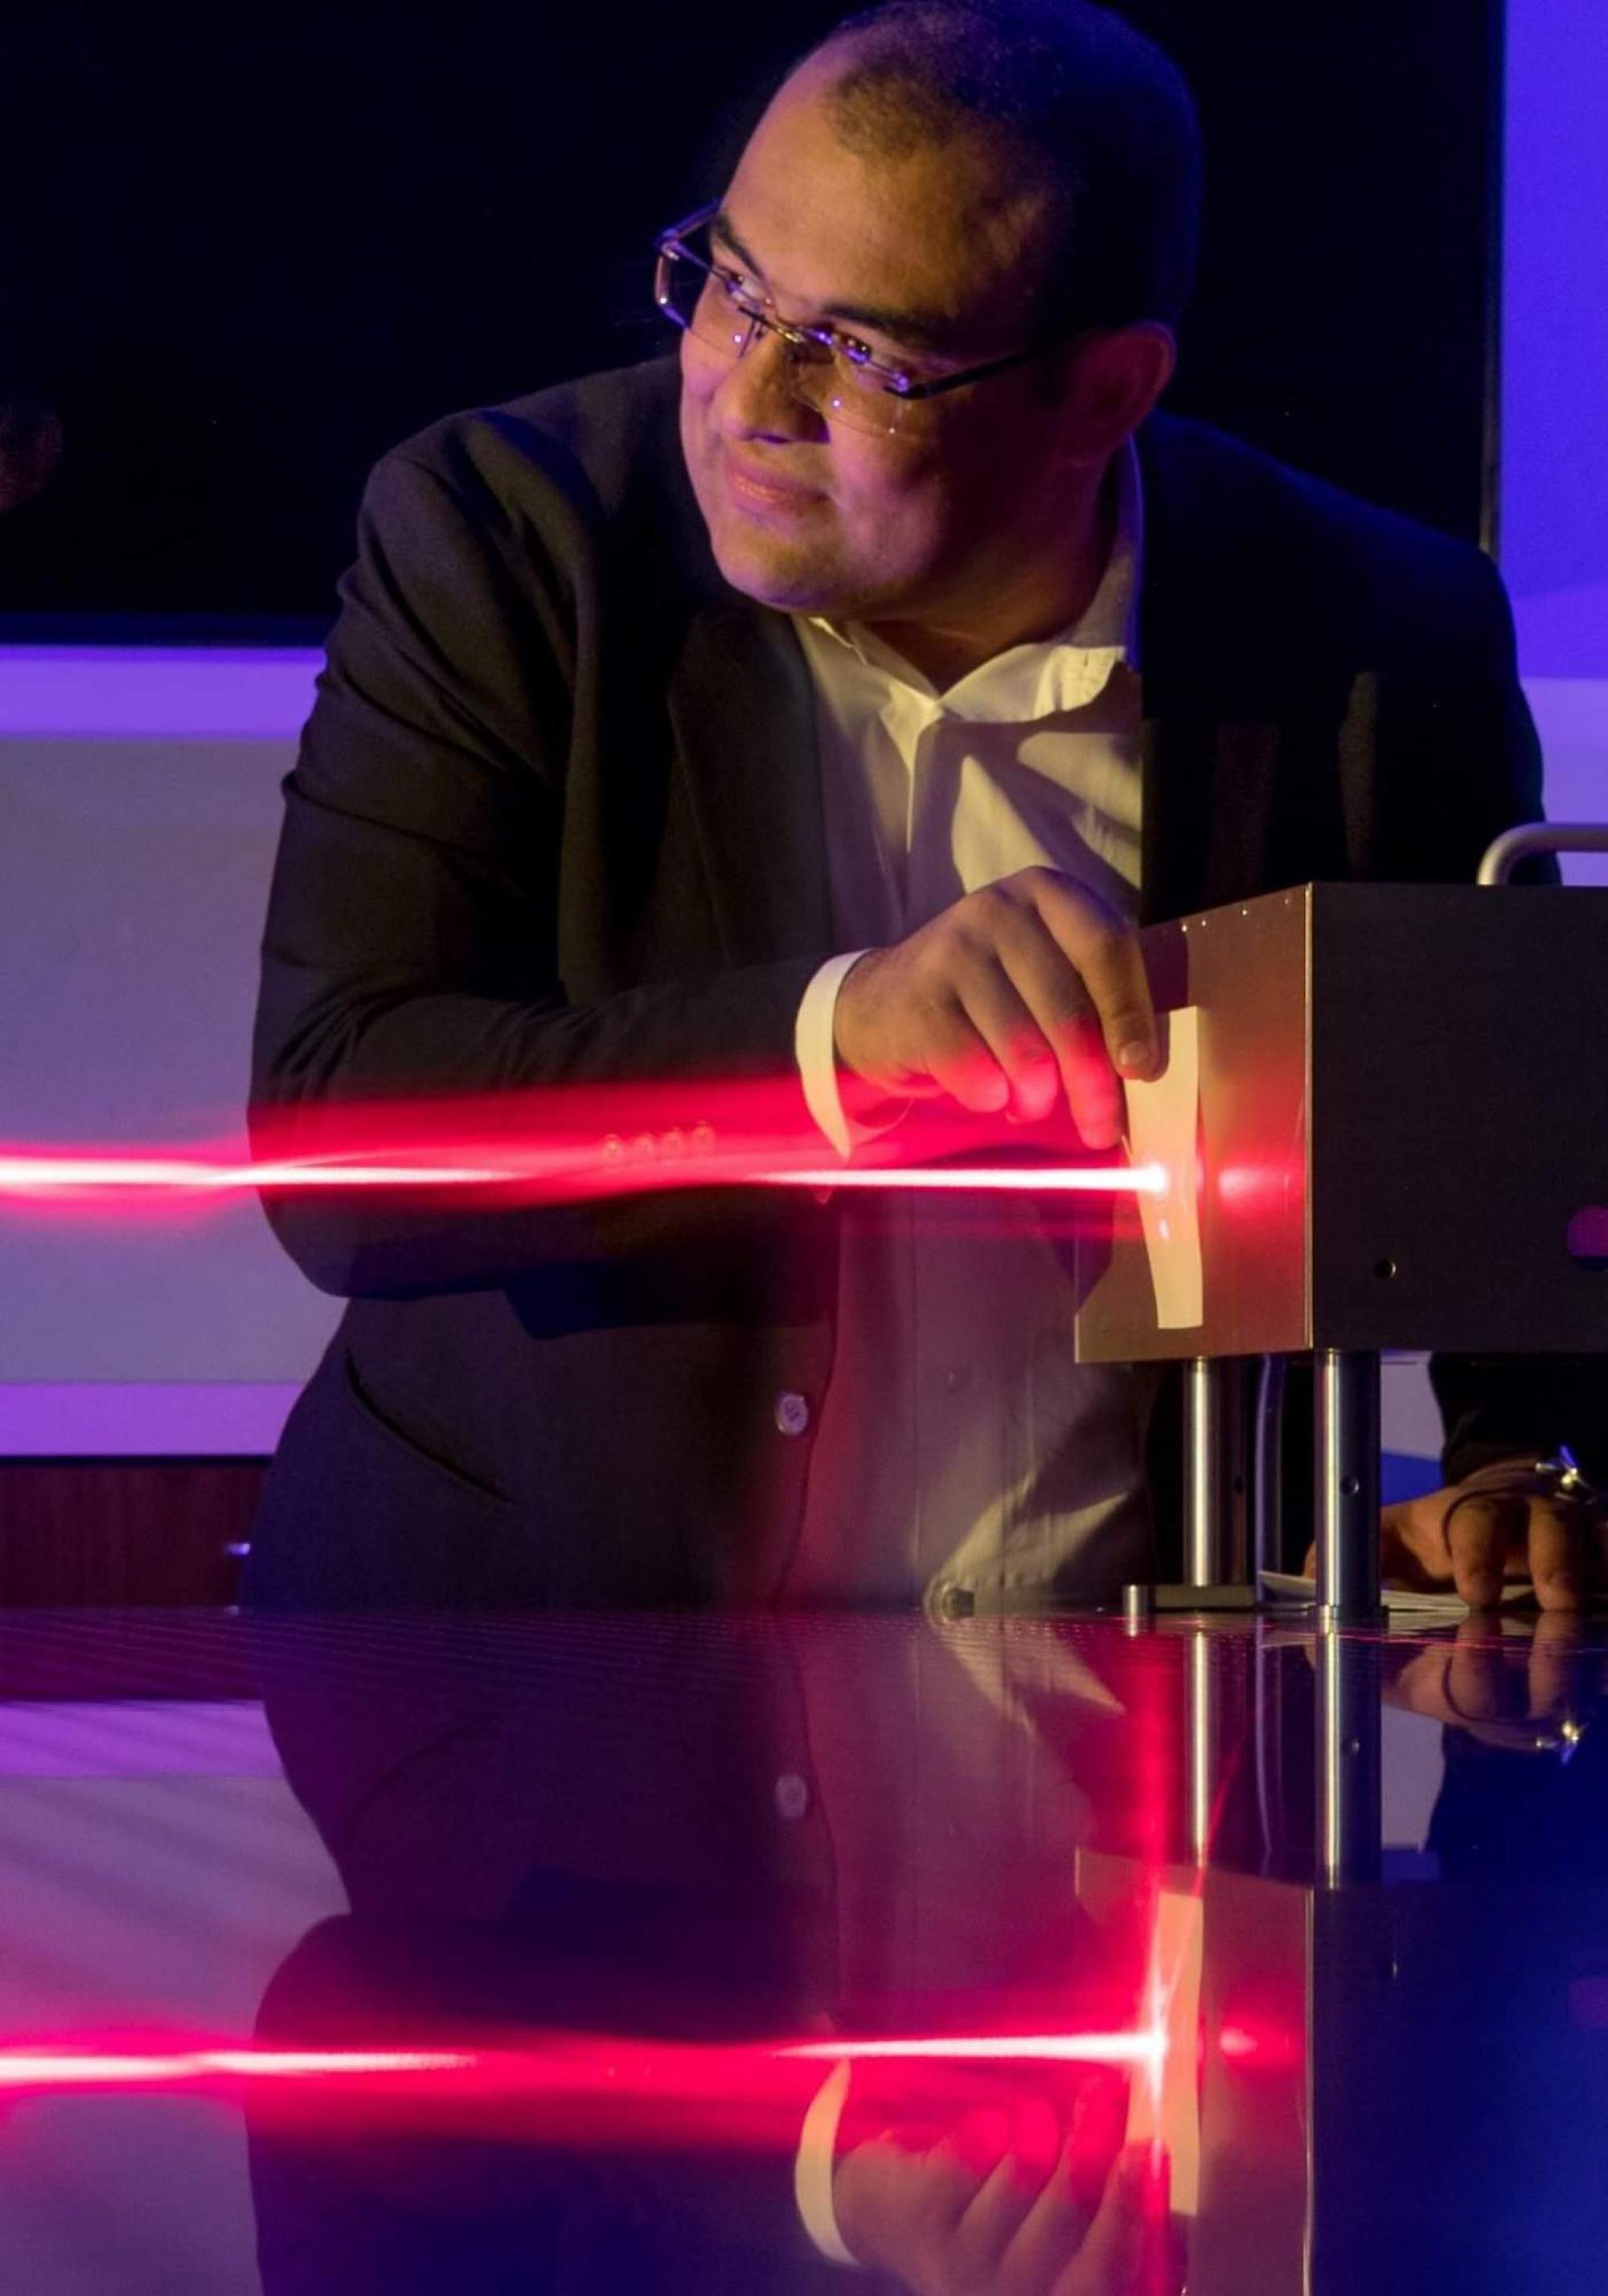 """Mohammed Hassan, a University of Arizona assistant professor of physics and optical sciences, wants to be the first to photograph an electron in motion. """"The idea of seeing something humans have never seen before drives me,"""" Hassan said."""